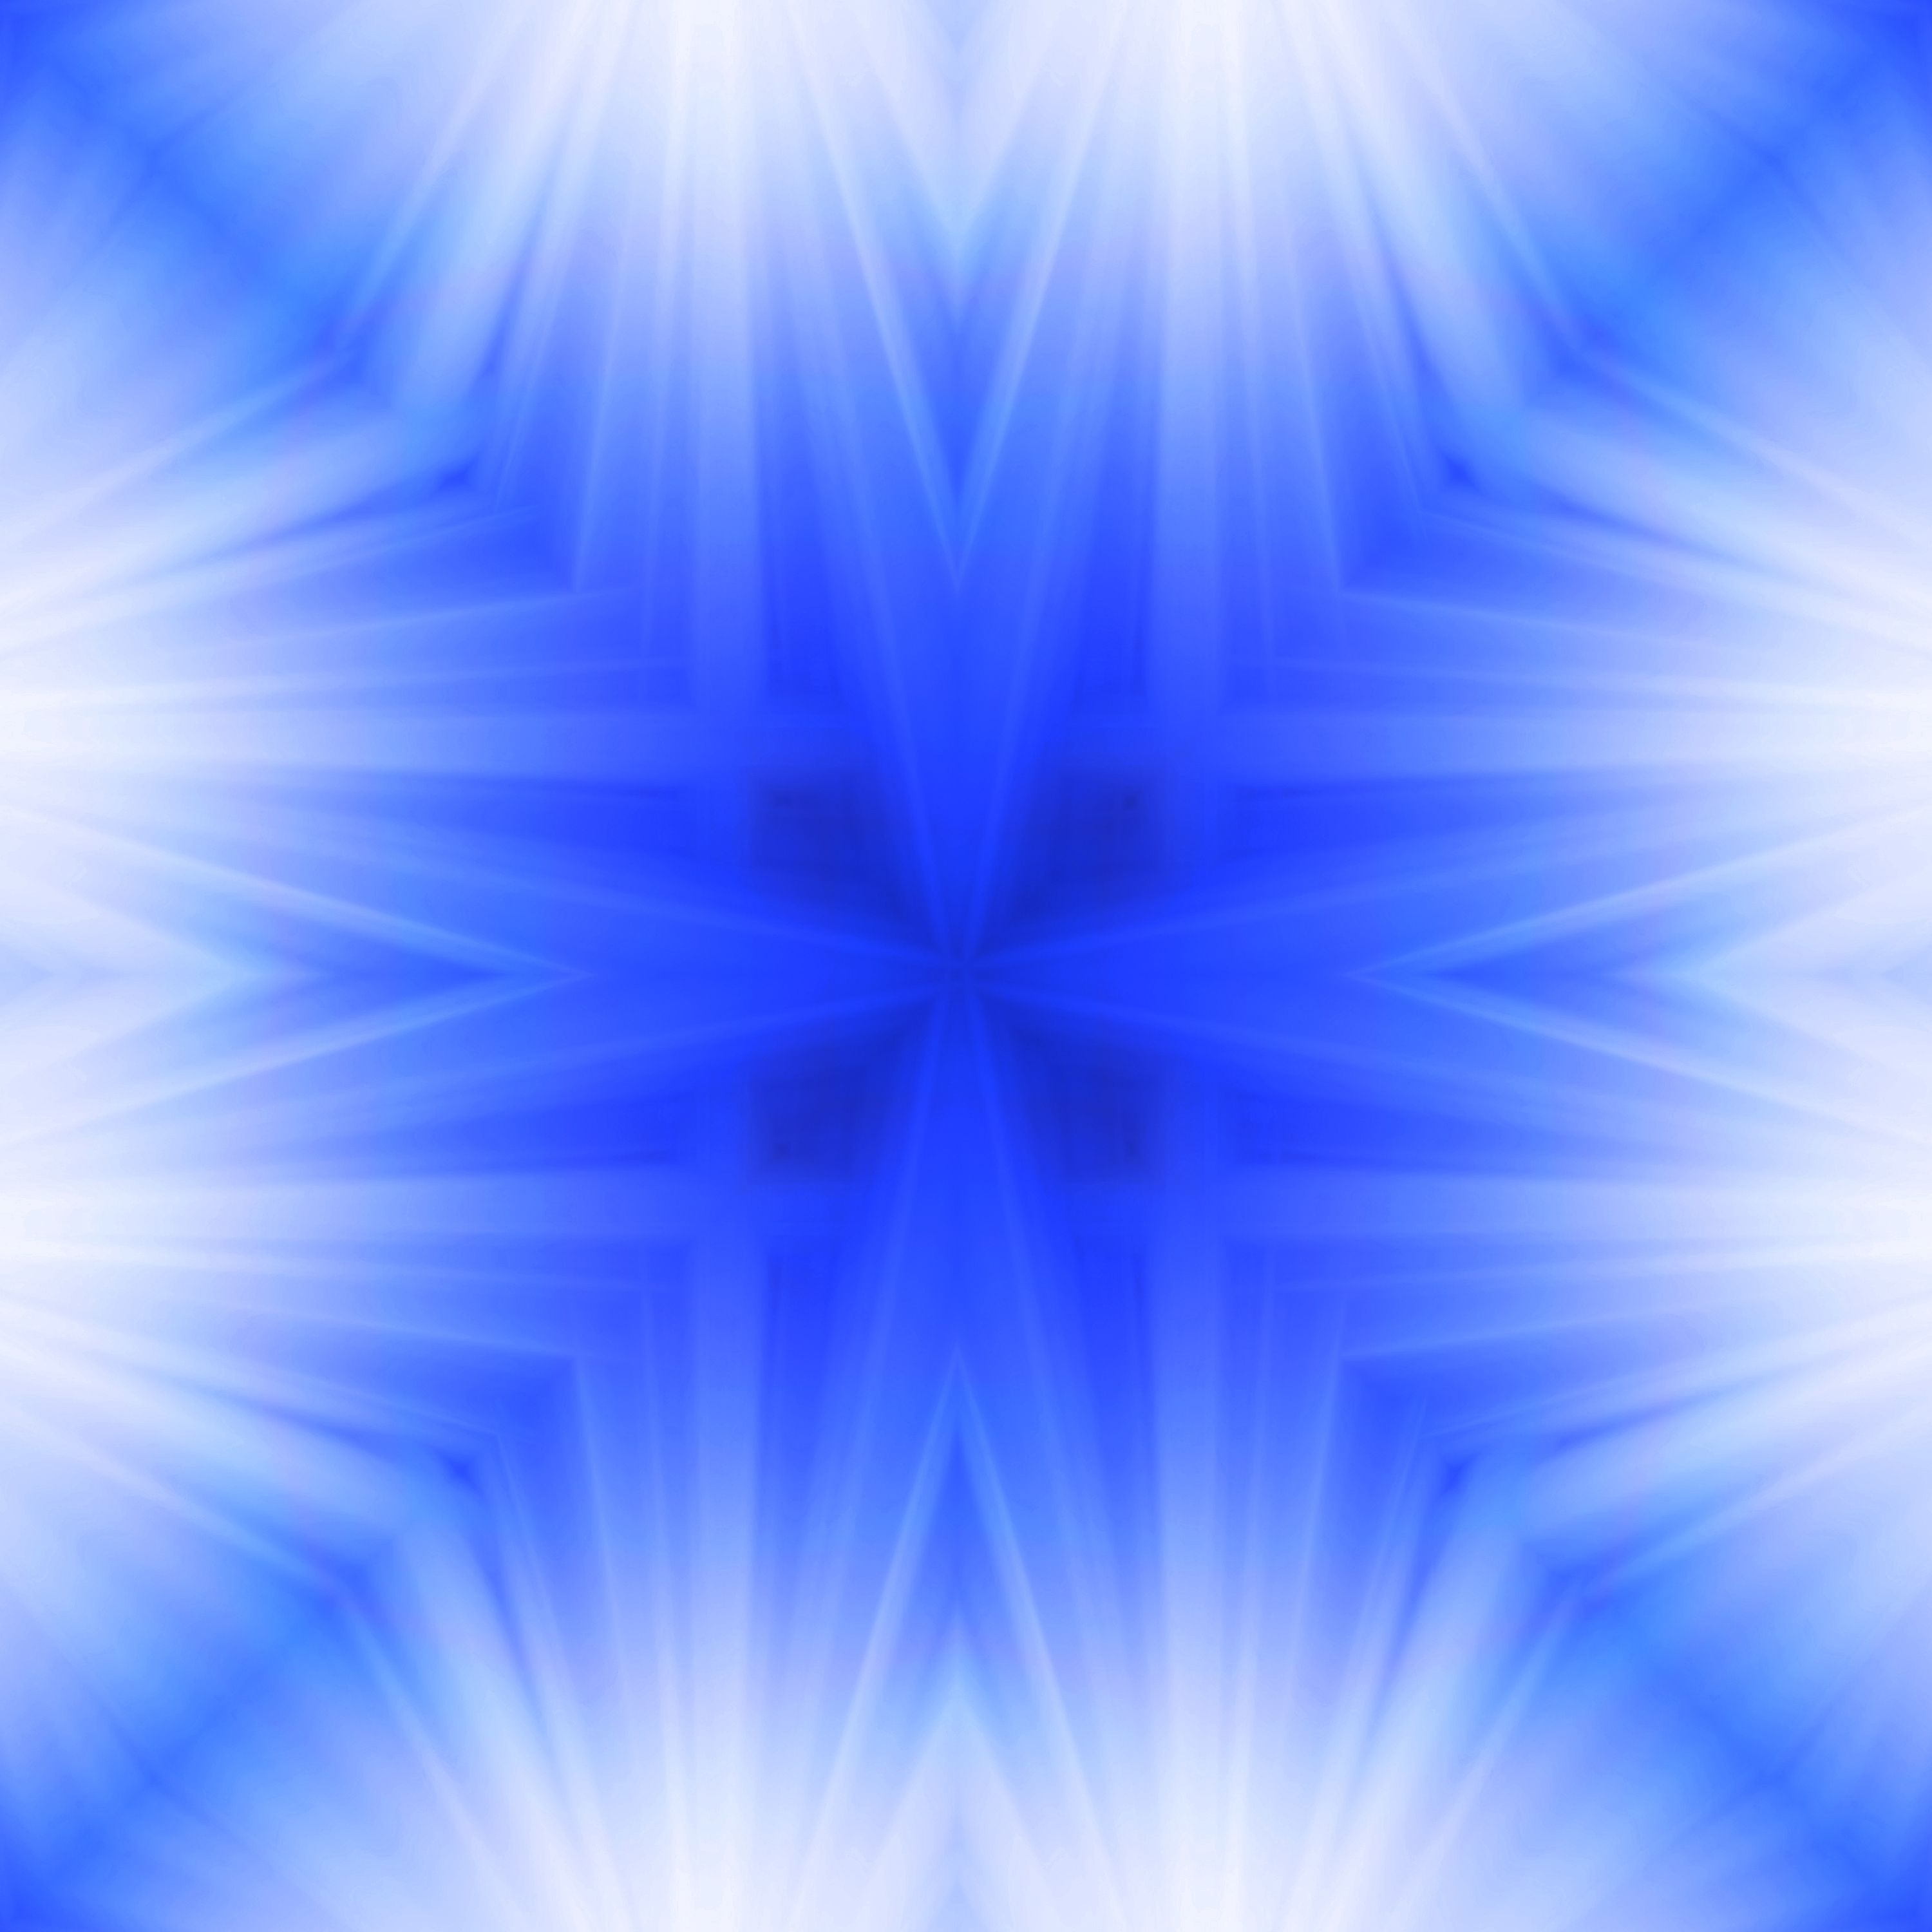 Bluerays, Abstract, Blue, Ray, HQ Photo